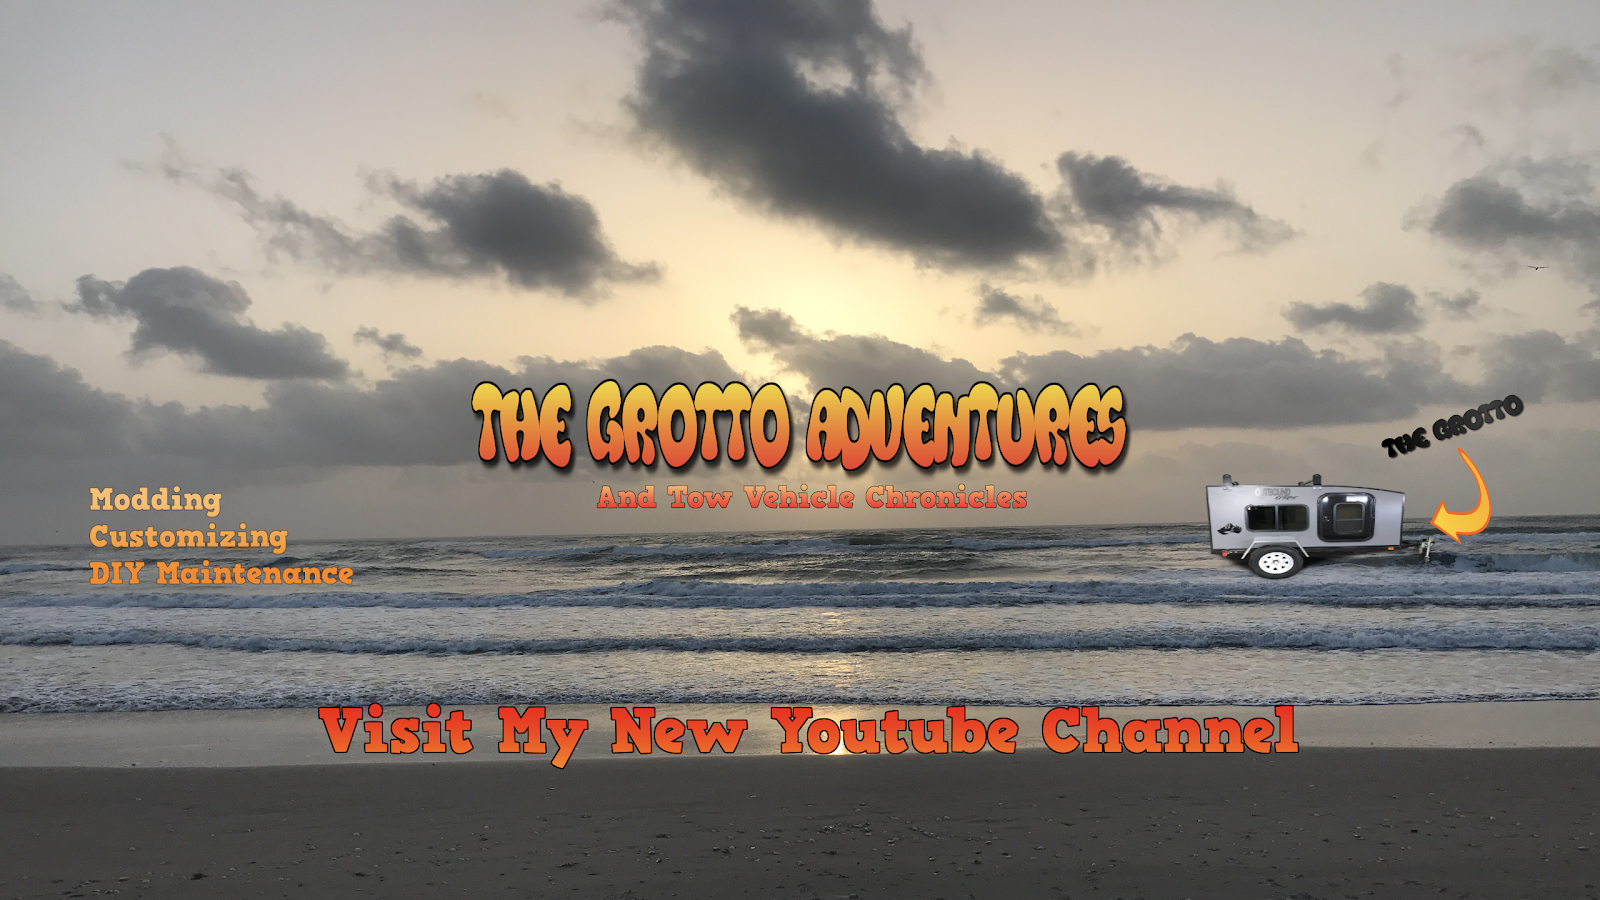 The Grotto Adventures